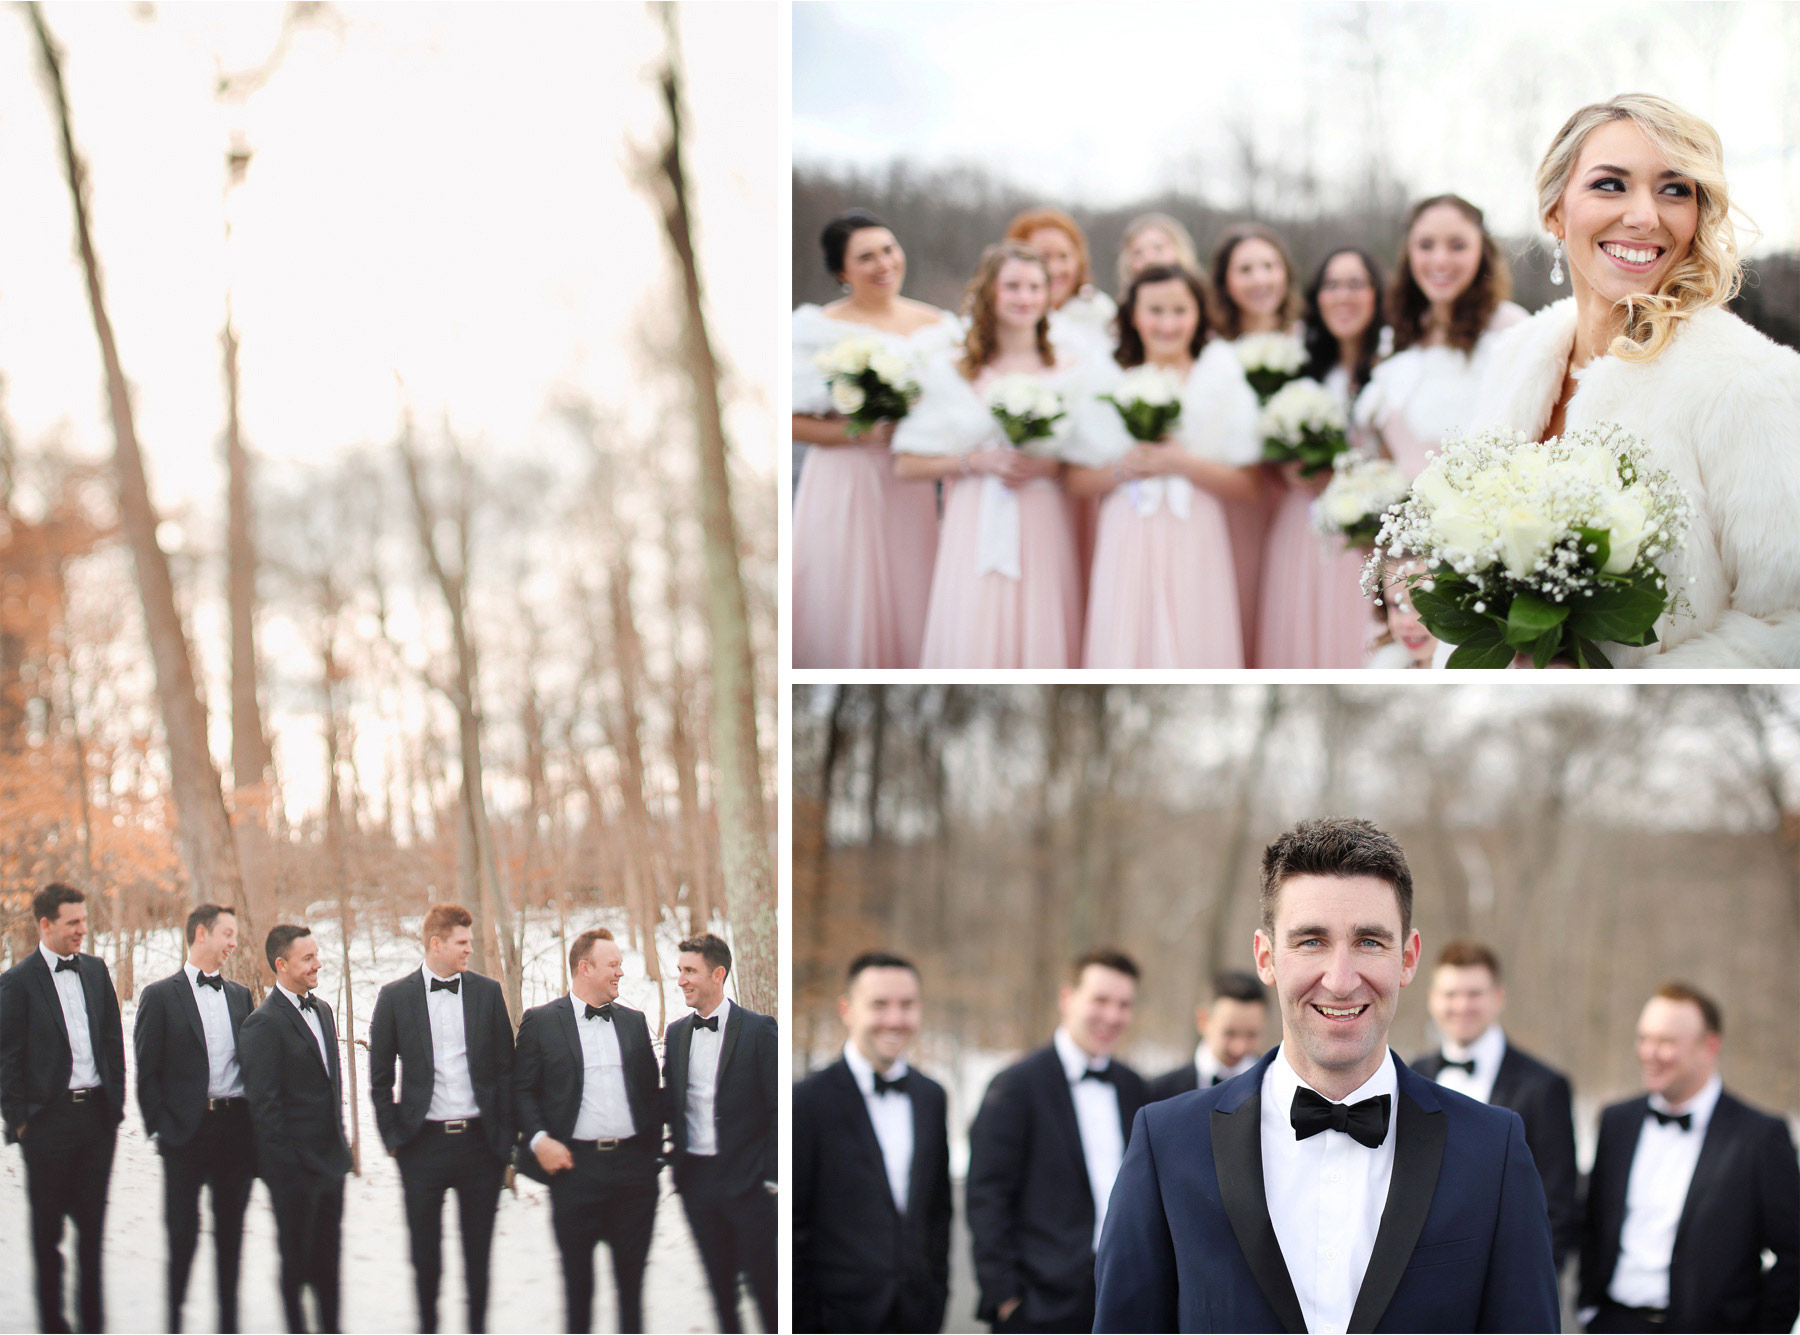 14-Watchung-New-Jersey-Wedding-Photographer-by-Andrew-Vick-Photography-Winter-Saint-Marys-Chuch-Stony-Hill-Bride-Groom-Bridesmaids-Groomsmen-Fur-Coat-Shrug-Vintage-Alexia-and-Justin.jpg